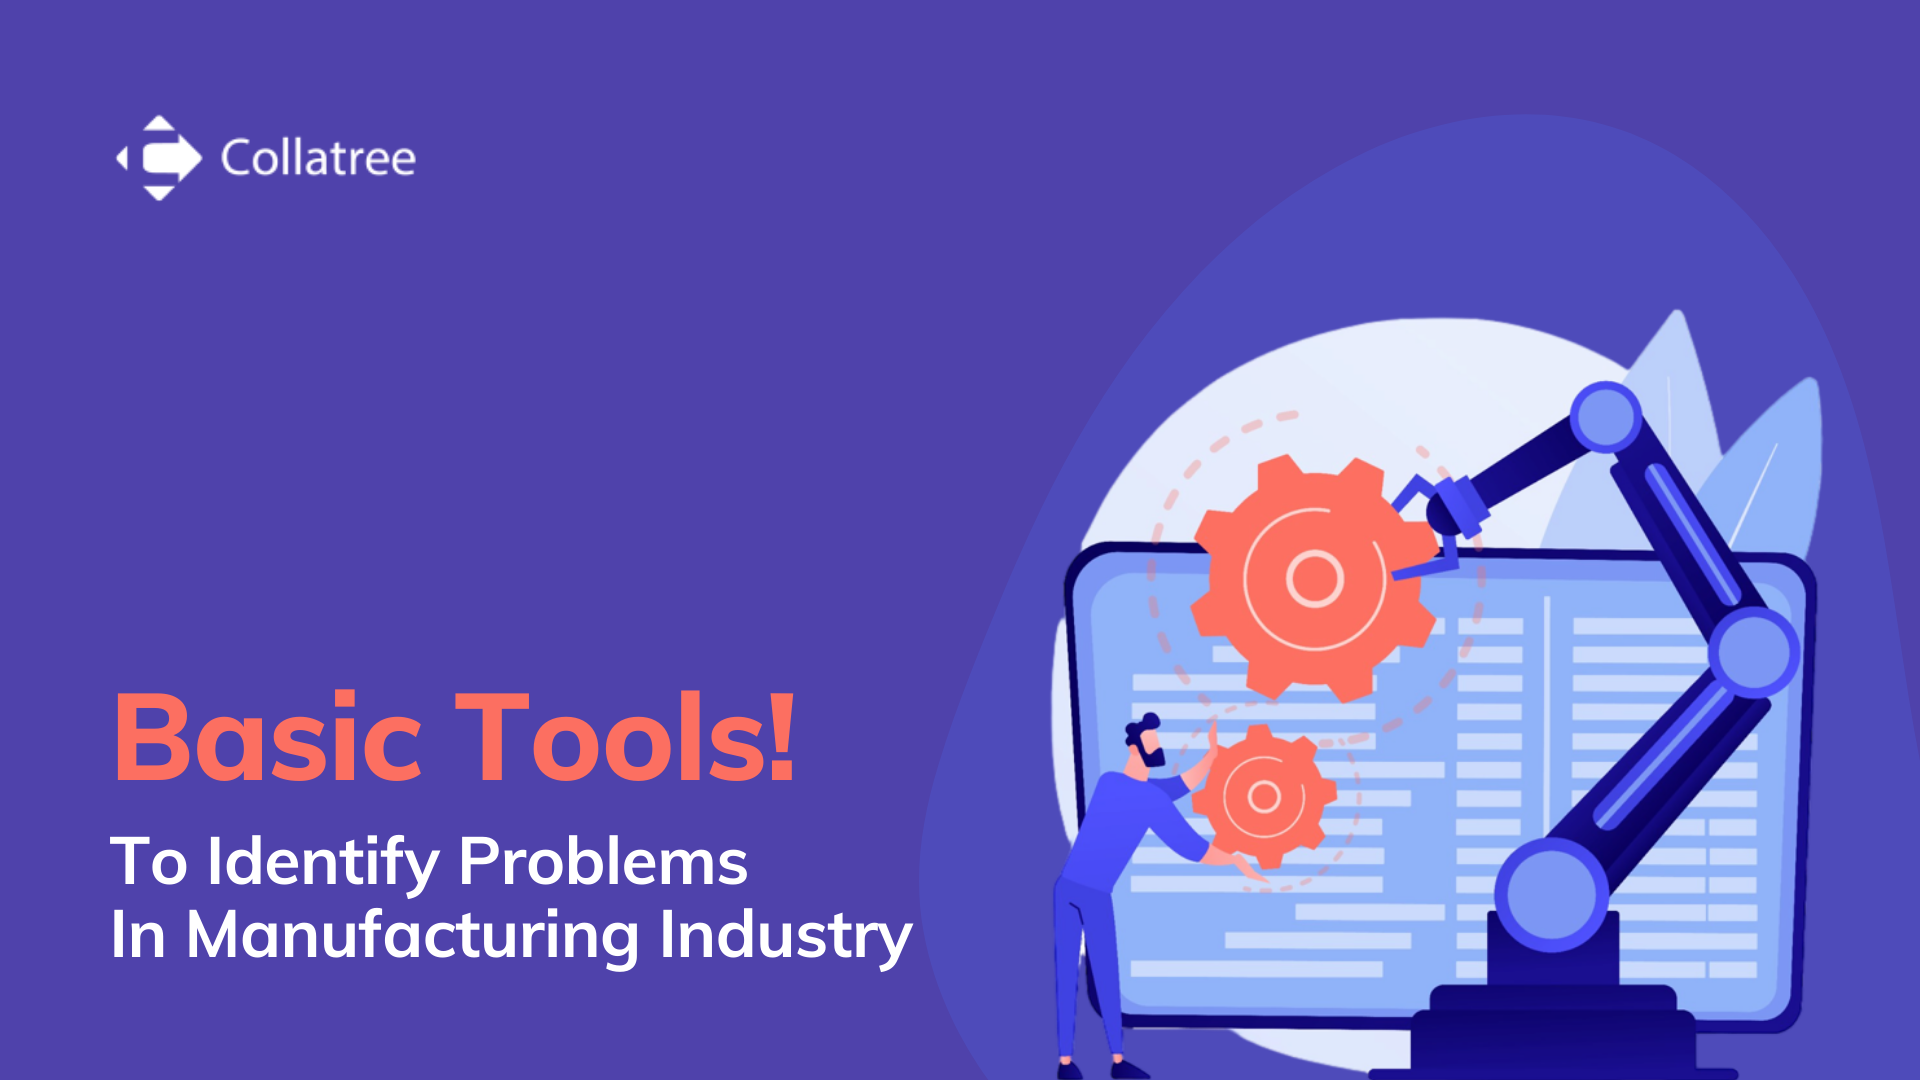 Two basic tools to identify problems in a manufacturing industry